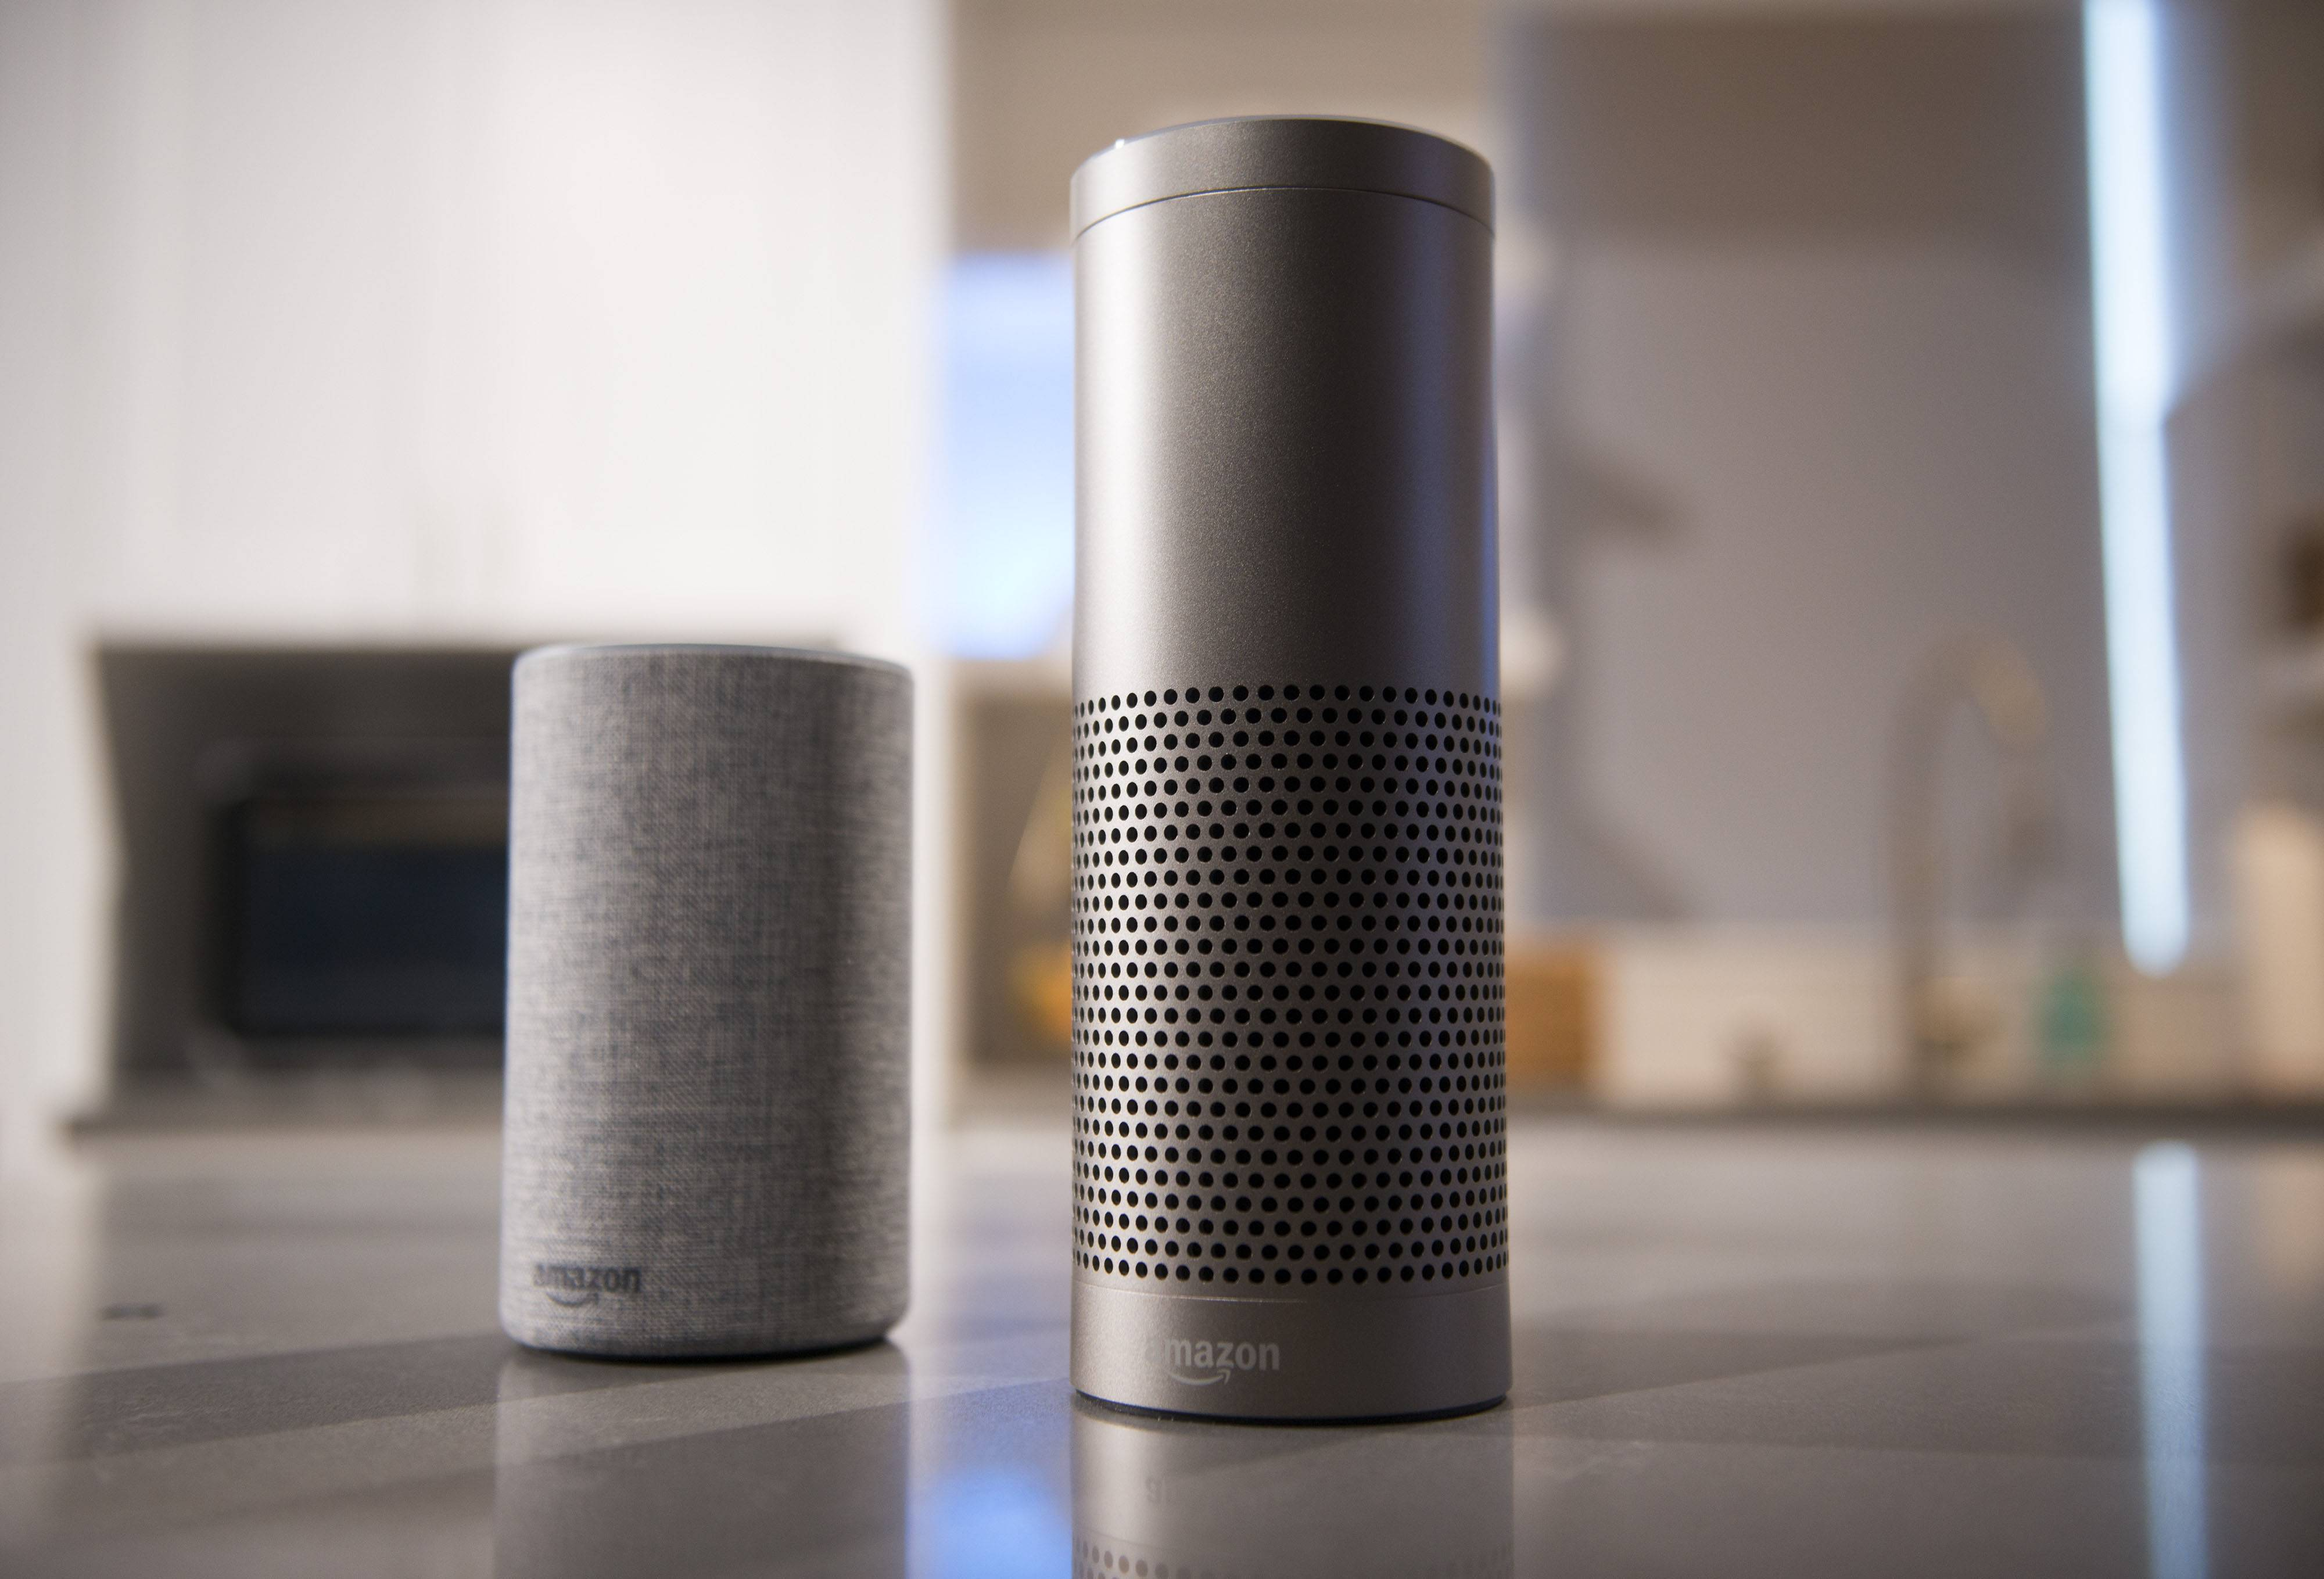 The Amazon.com Echo (left) and Echo Plus in Seattle, Washington, on Sept. 27, 2017.